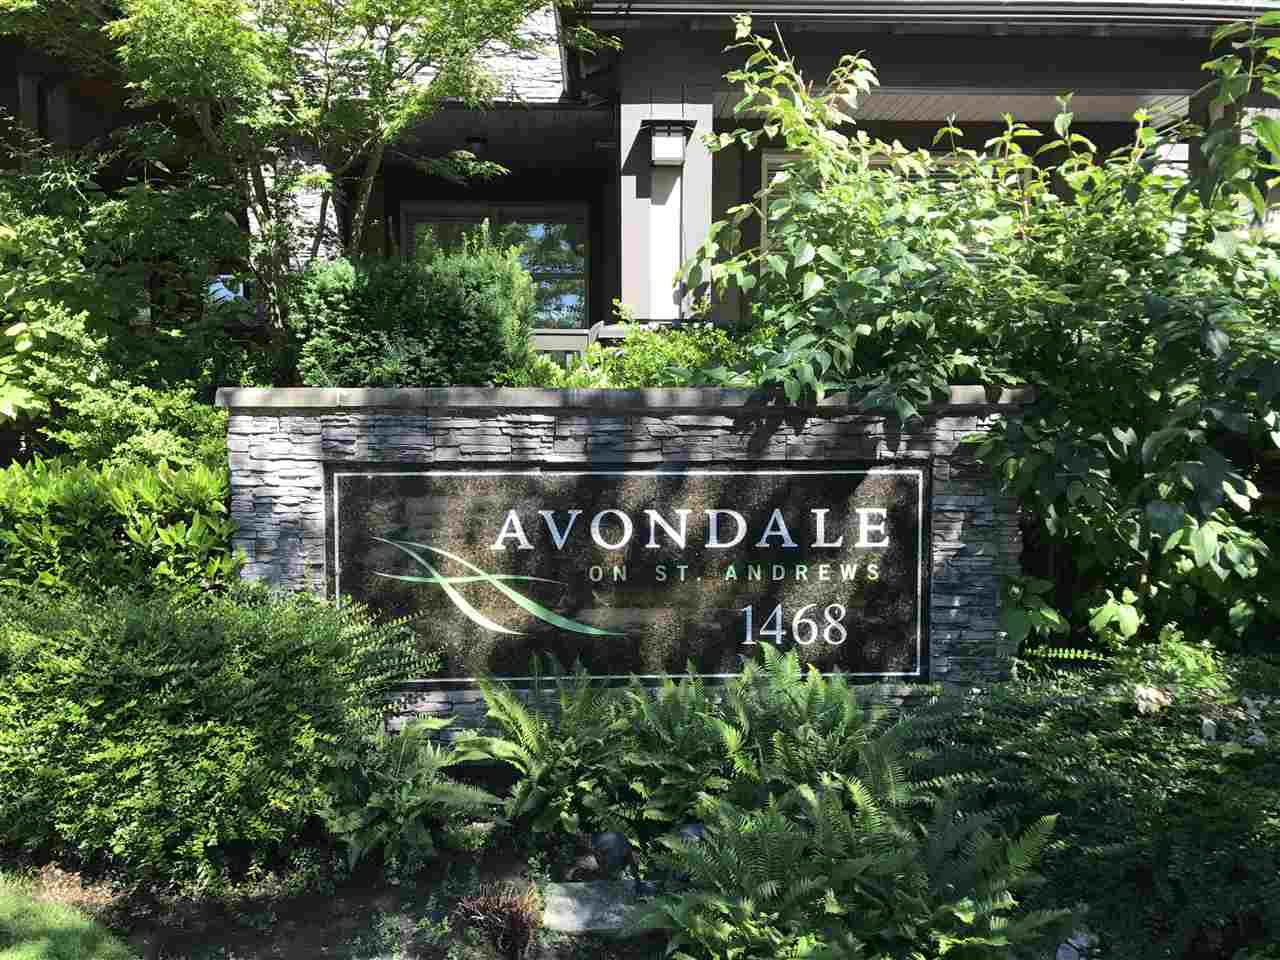 Main Photo: 101 1468 ST. ANDREWS AVENUE in North Vancouver: Central Lonsdale Condo for sale : MLS® # R2193873